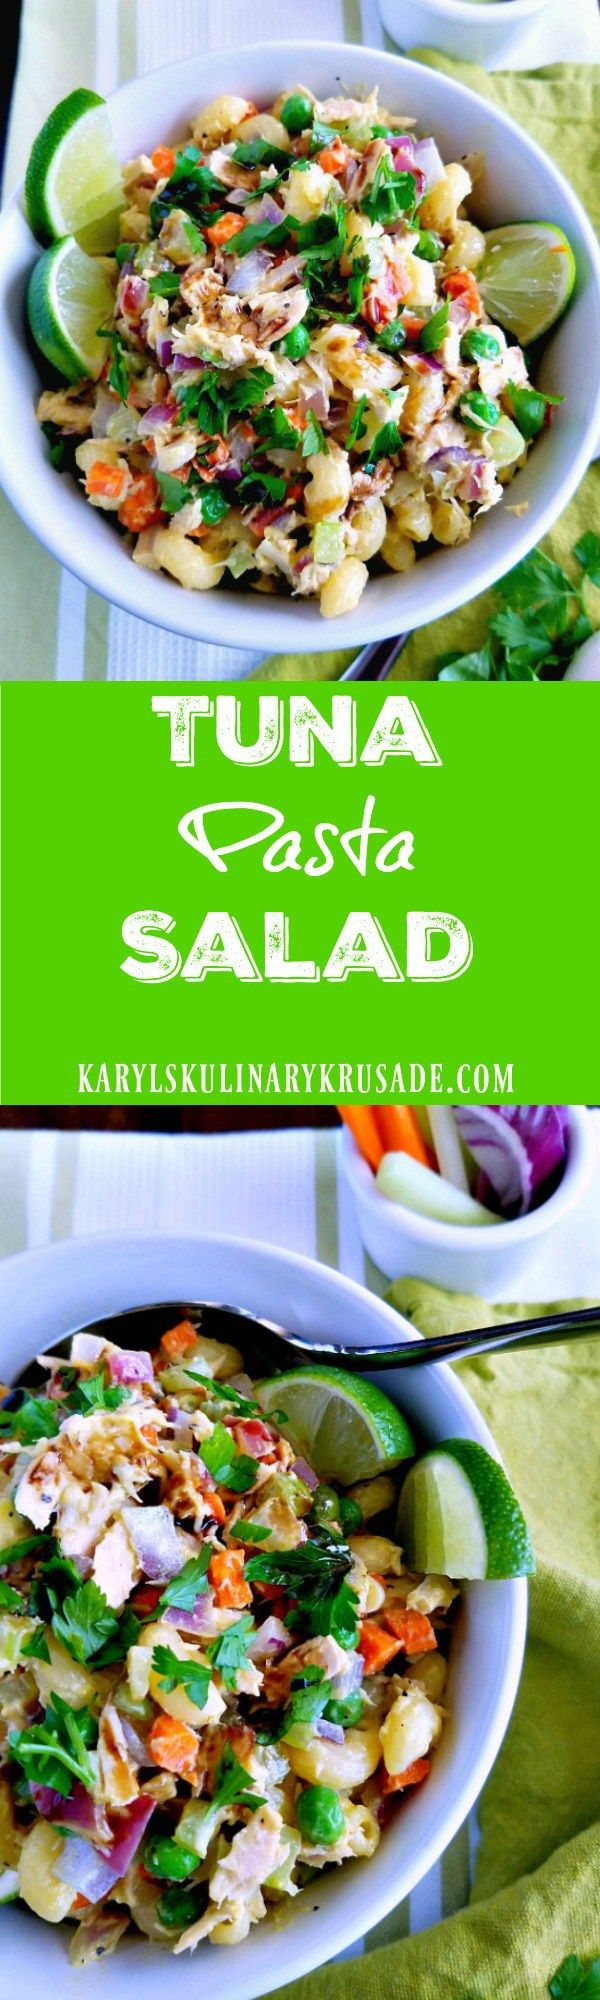 Tuna Pasta Salad is a light, delicious and filling dish that is perfect for lunch. Vegetables, pasta and Albacore tuna come together in perfect harmony. Top with a drizzle of high-quality balsamic vinegar for a luxurious finish